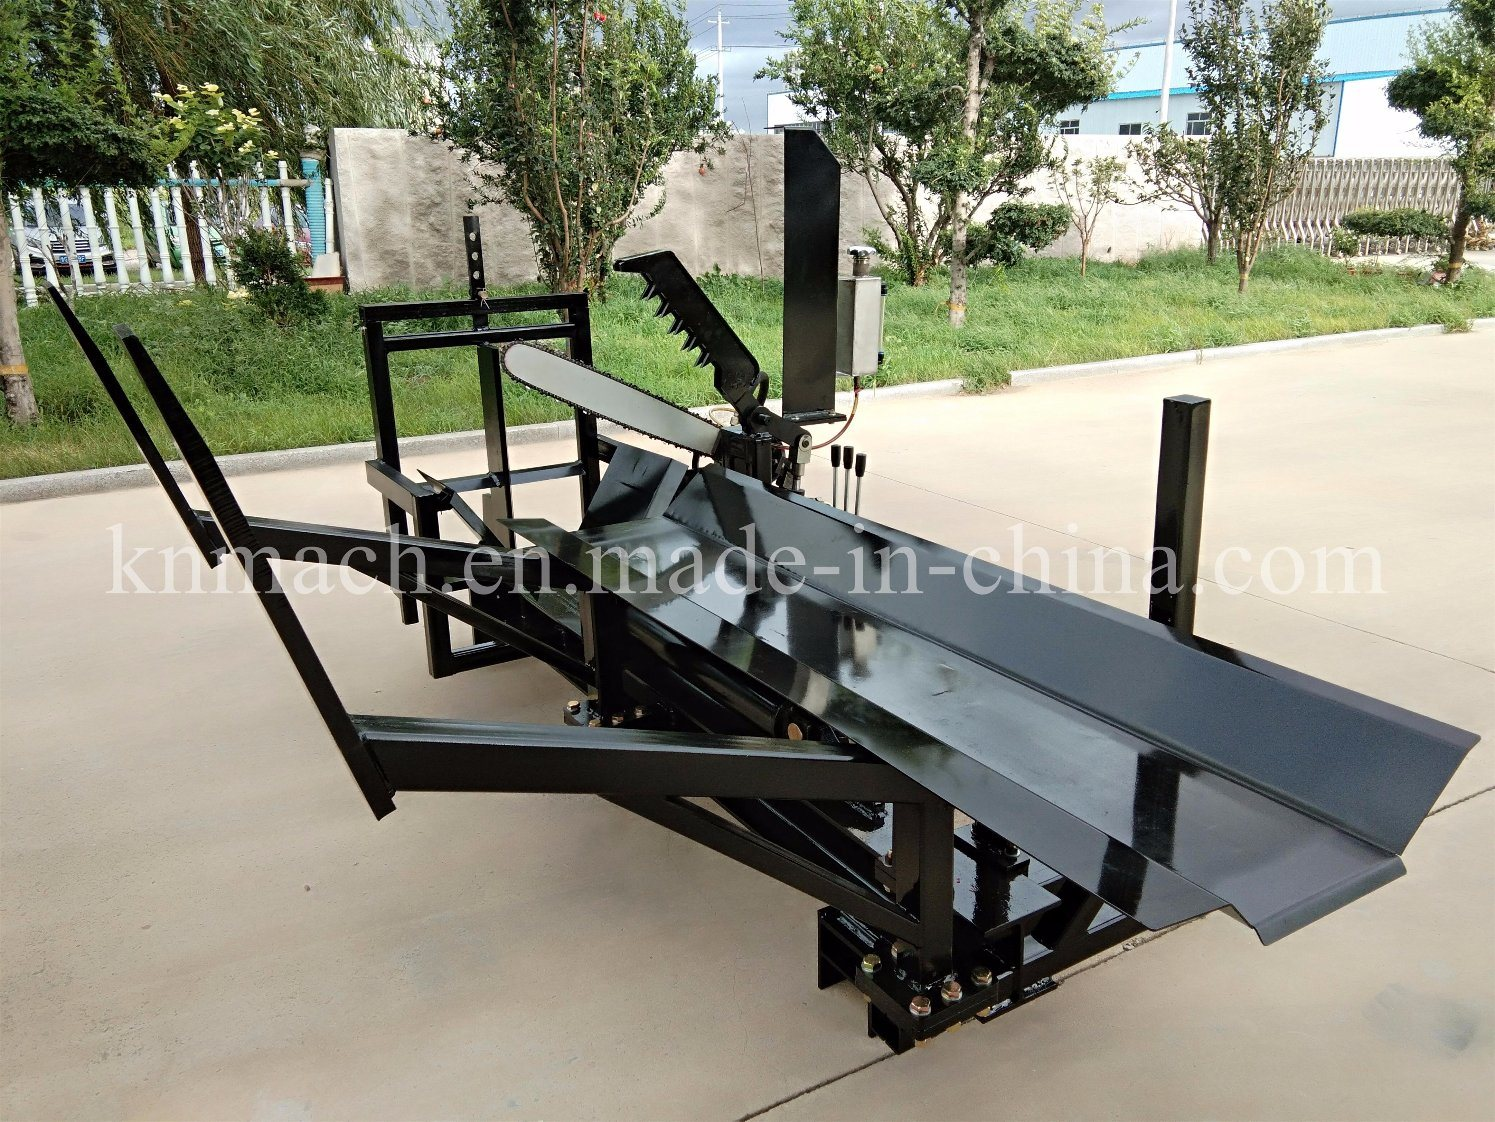 [Hot Item] Tractor Skidsteer Attachment Firewood Processor